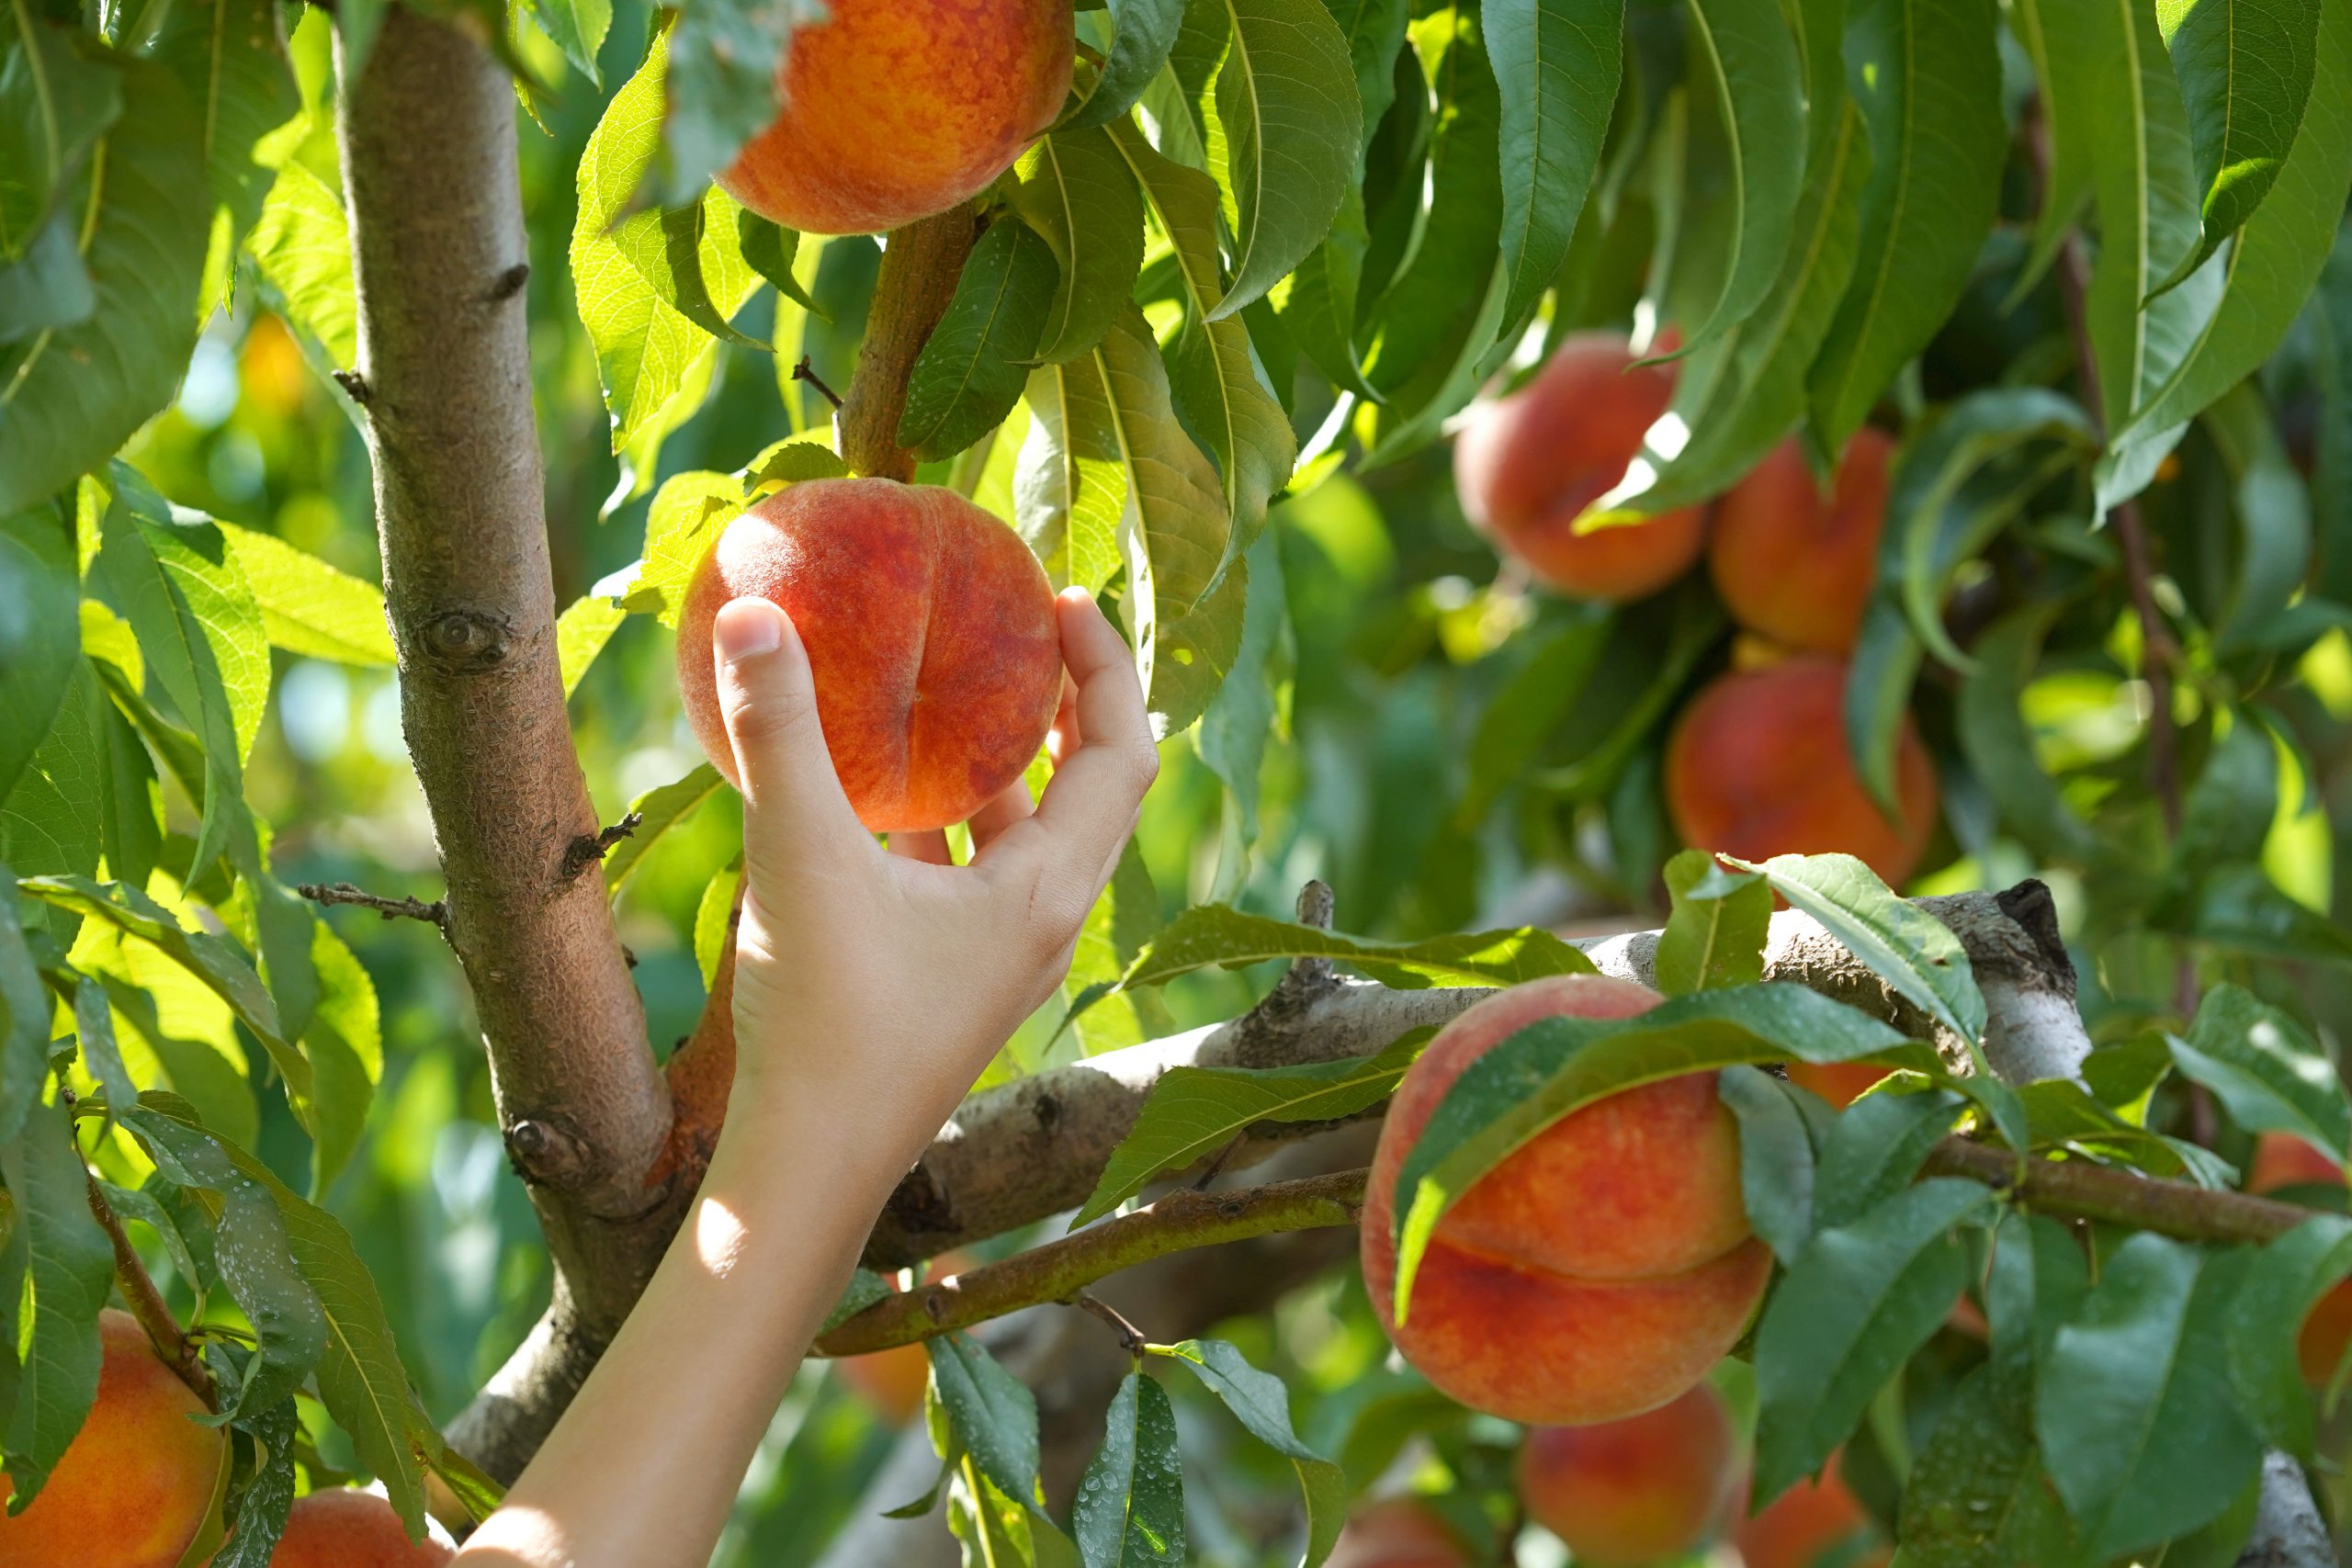 womans hand peach picking texas at one of the texas peach farms where you can pick your own peaches